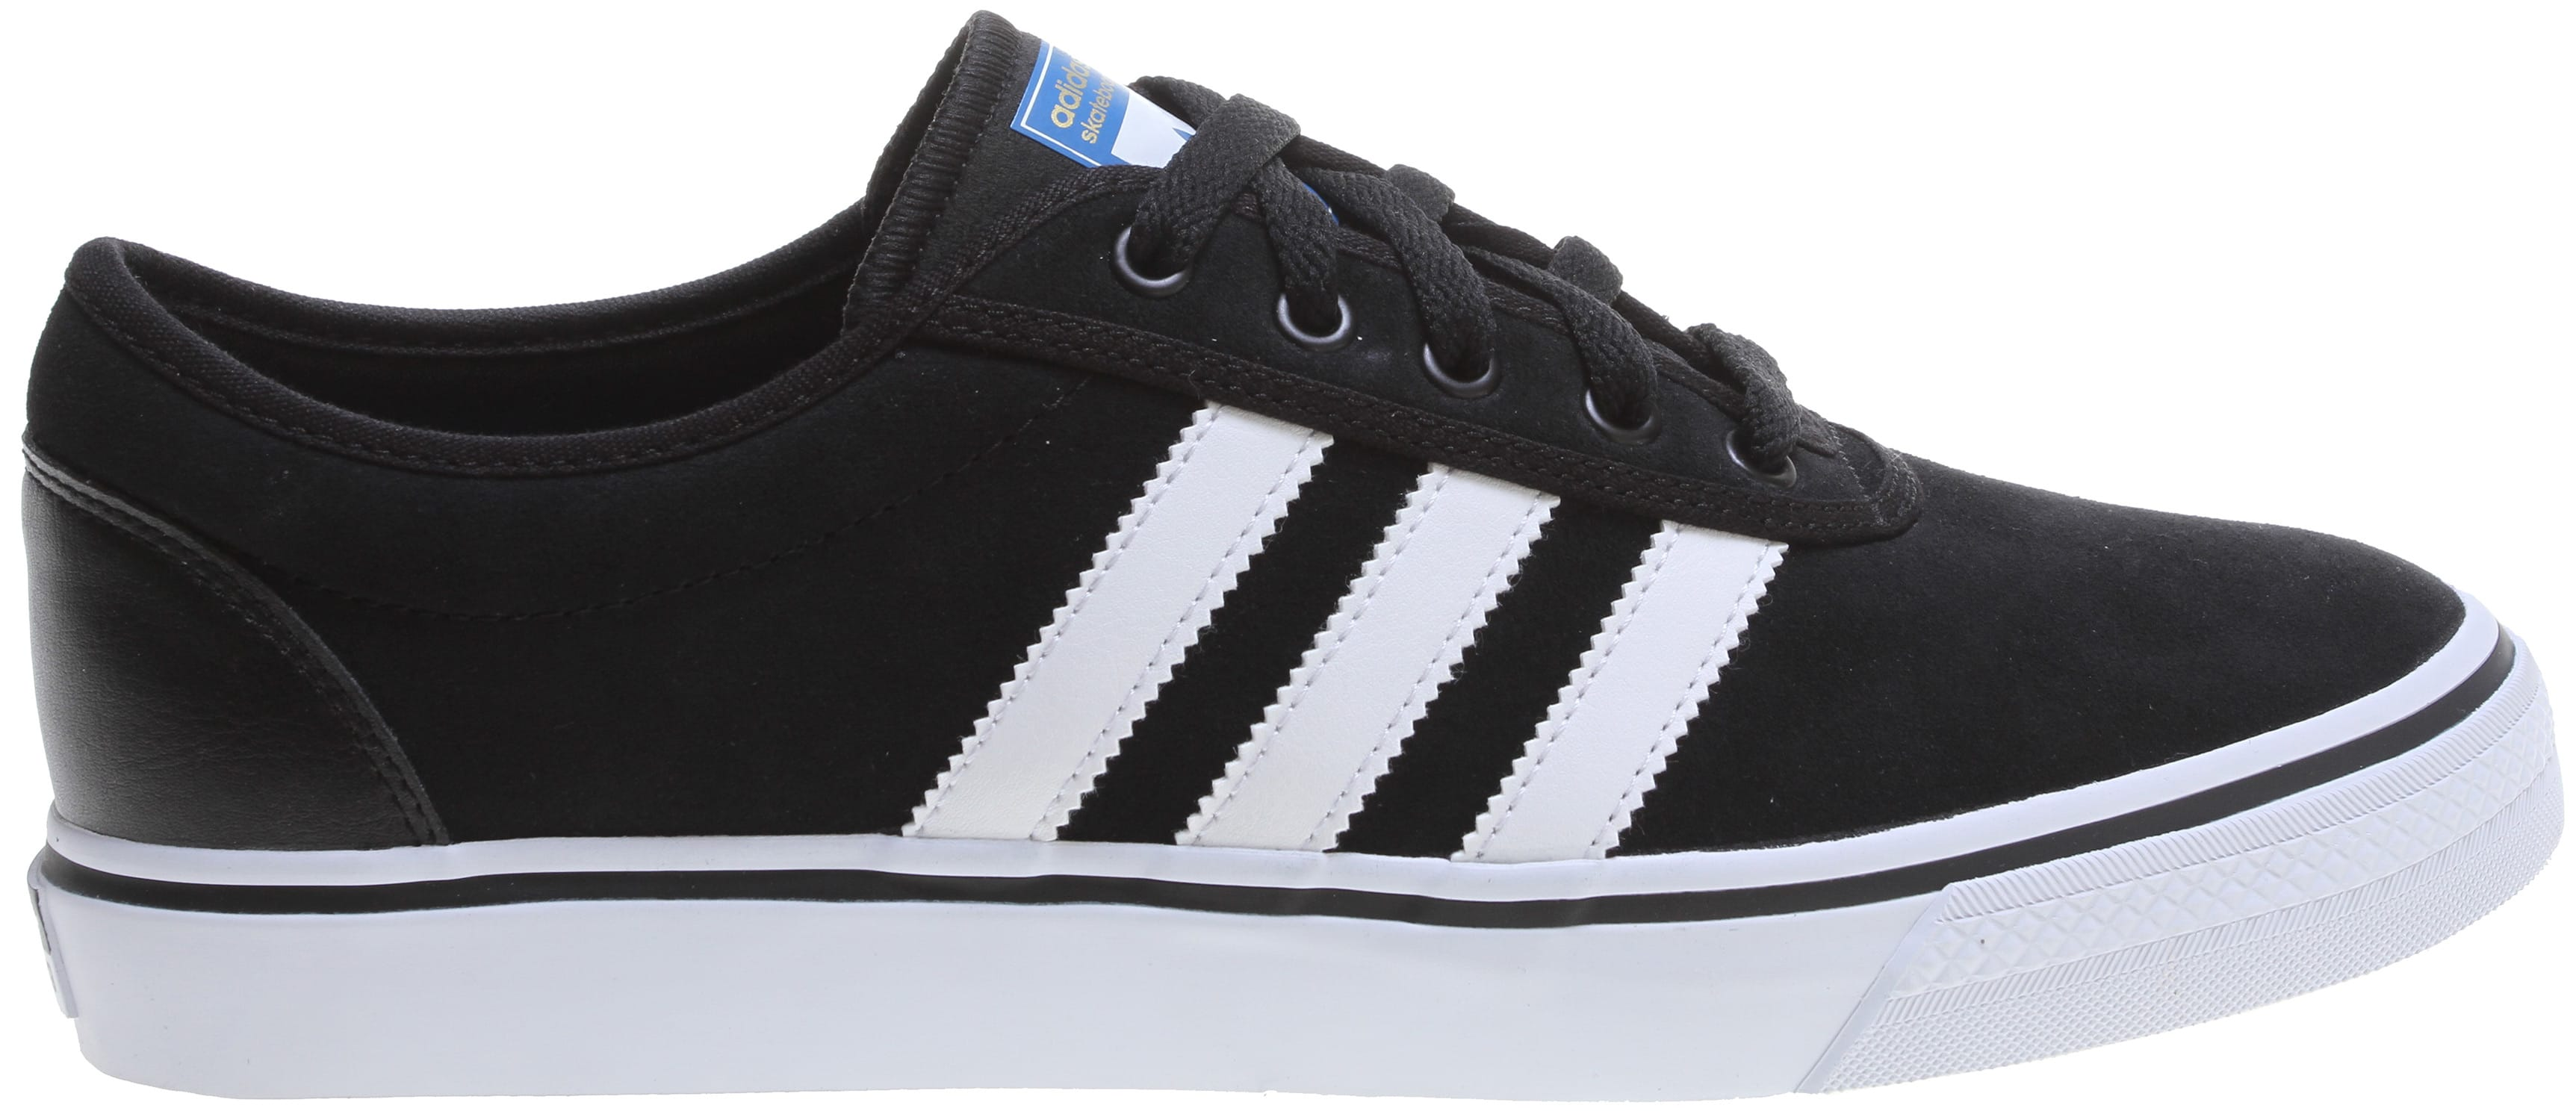 new products e8931 ab281 Adidas Adi-Ease Pro Skate Shoes - thumbnail 1